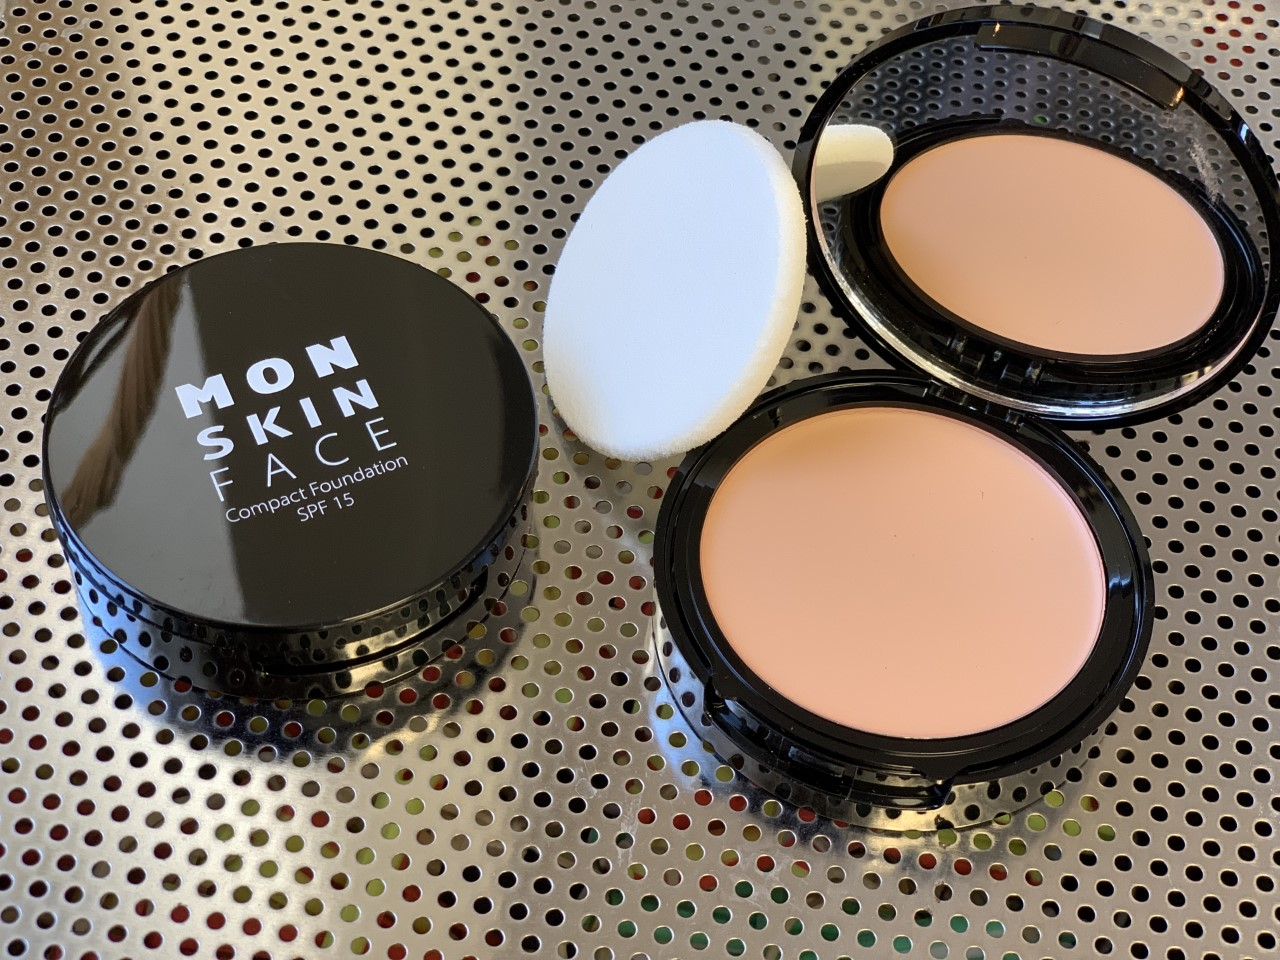 Mon-Skin-Face-Foundation